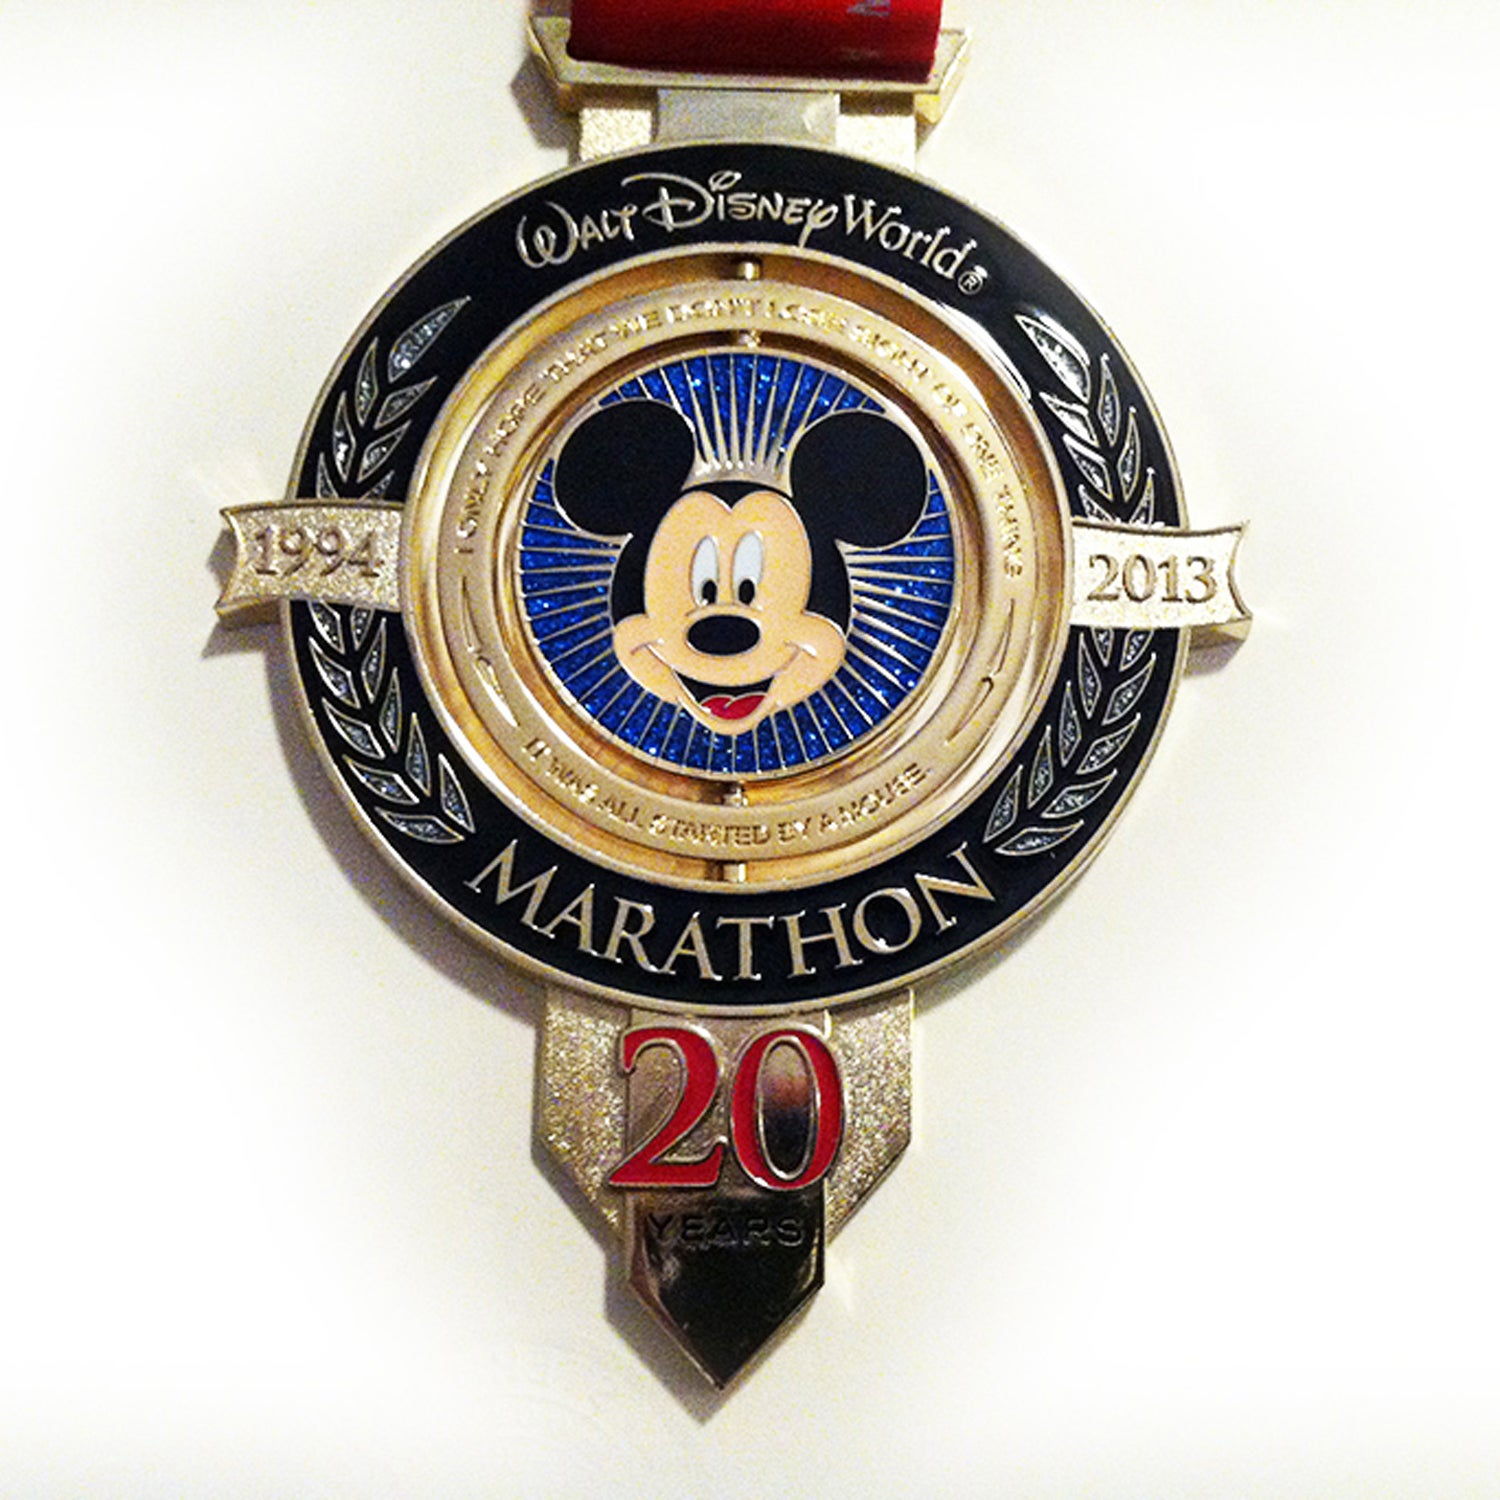 Solera: With these races' exorbitant price tags, you can bet that Disney will invest in top-notch hardware. The 20th anniversary of their biggest running event delivered with a regal, heavy, and incredibly elegant medal. The center spins with Mickey Mouse's modern incarnation on one side and his original Steamboat Willie version on the other.